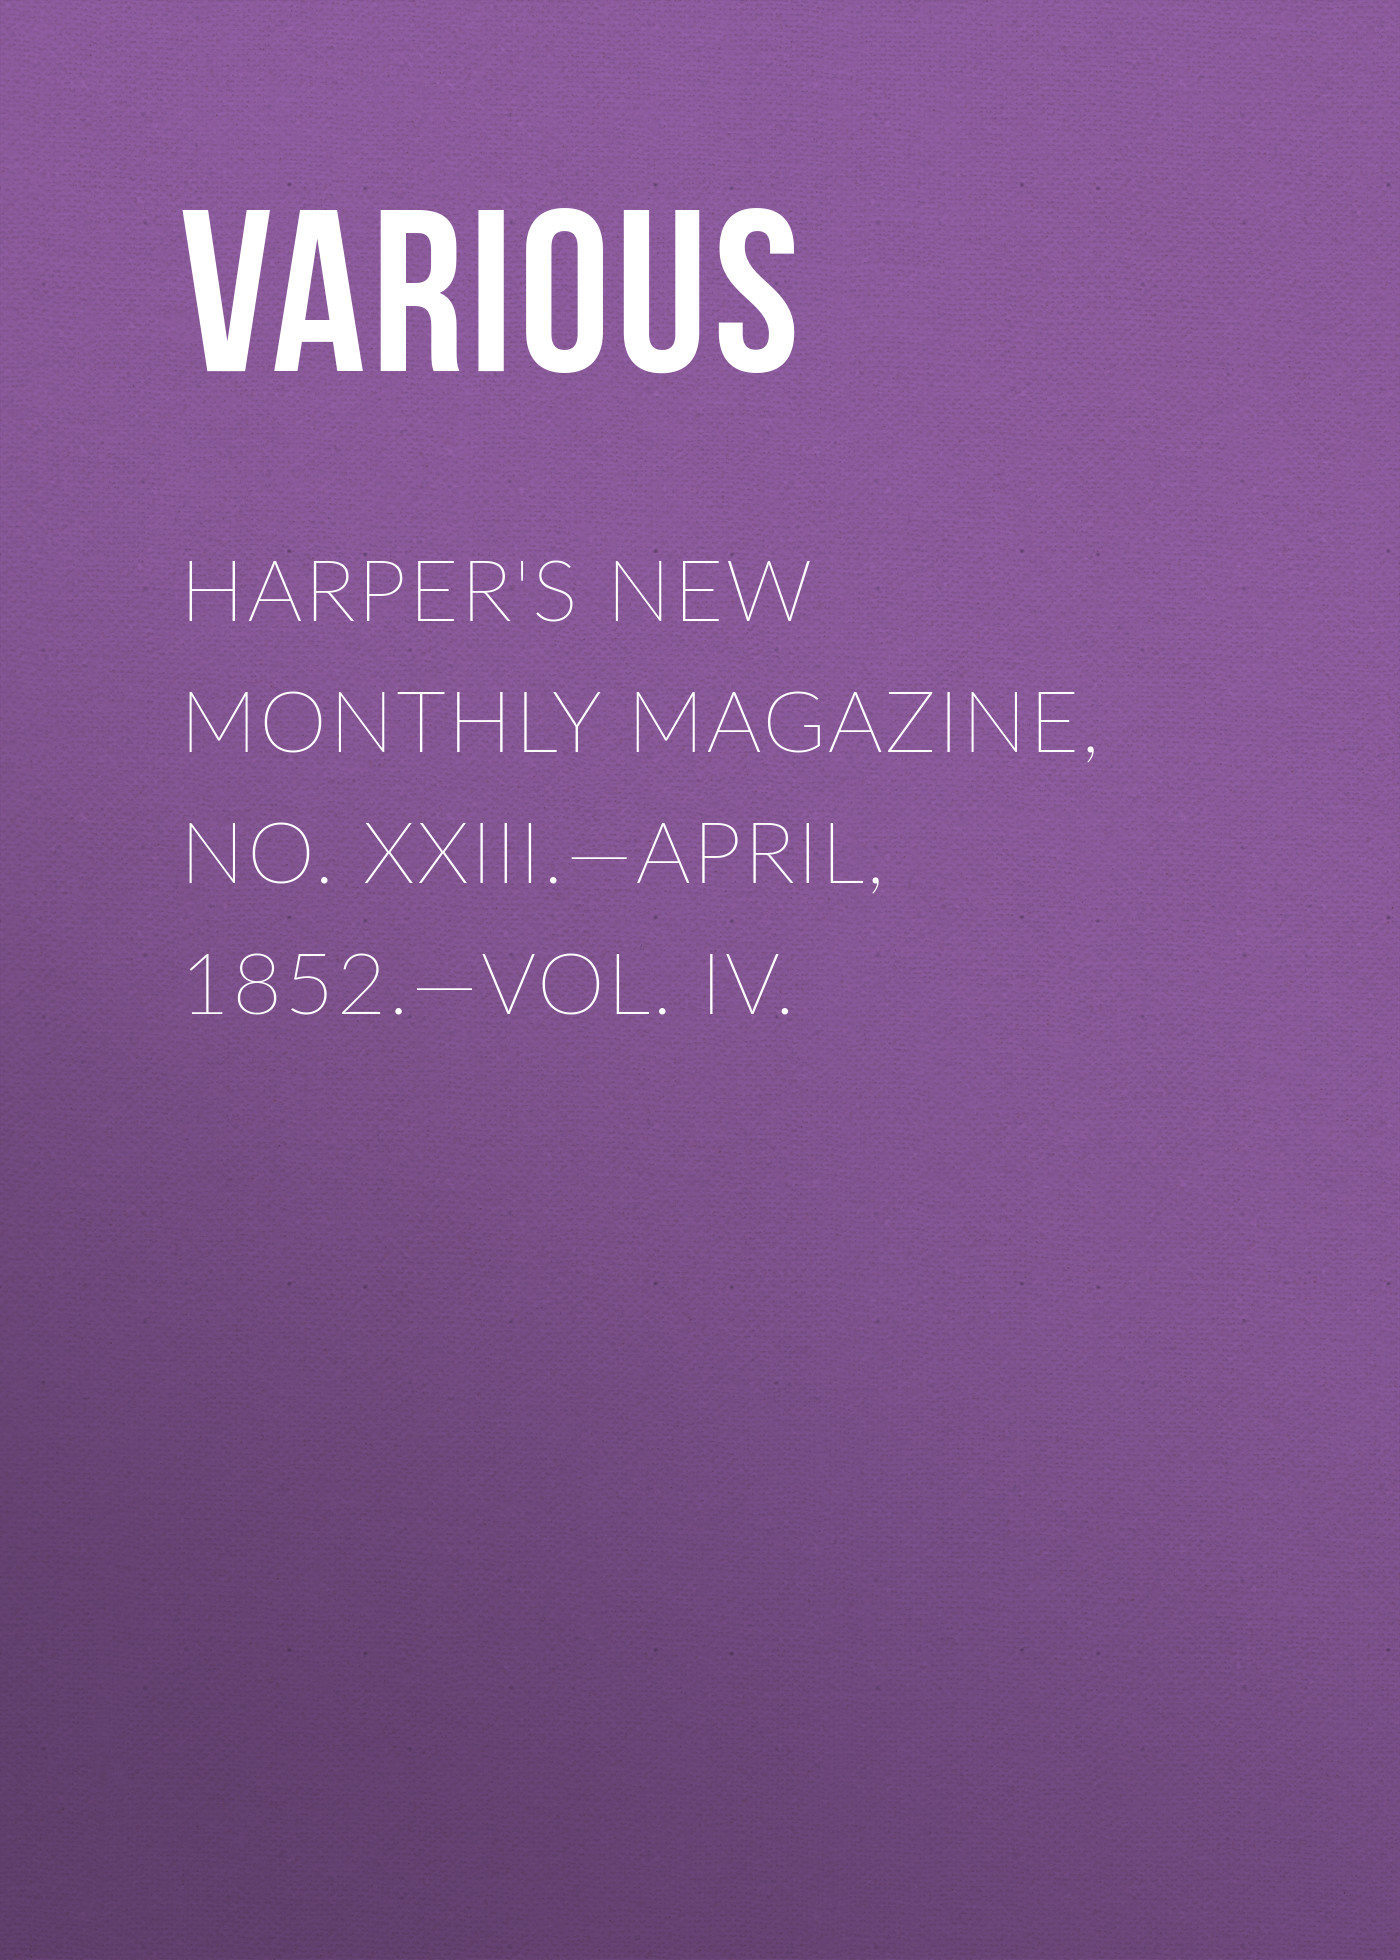 Various Harper's New Monthly Magazine, No. XXIII.—April, 1852.—Vol. IV. various harper s new monthly magazine vol iv no xx january 1852